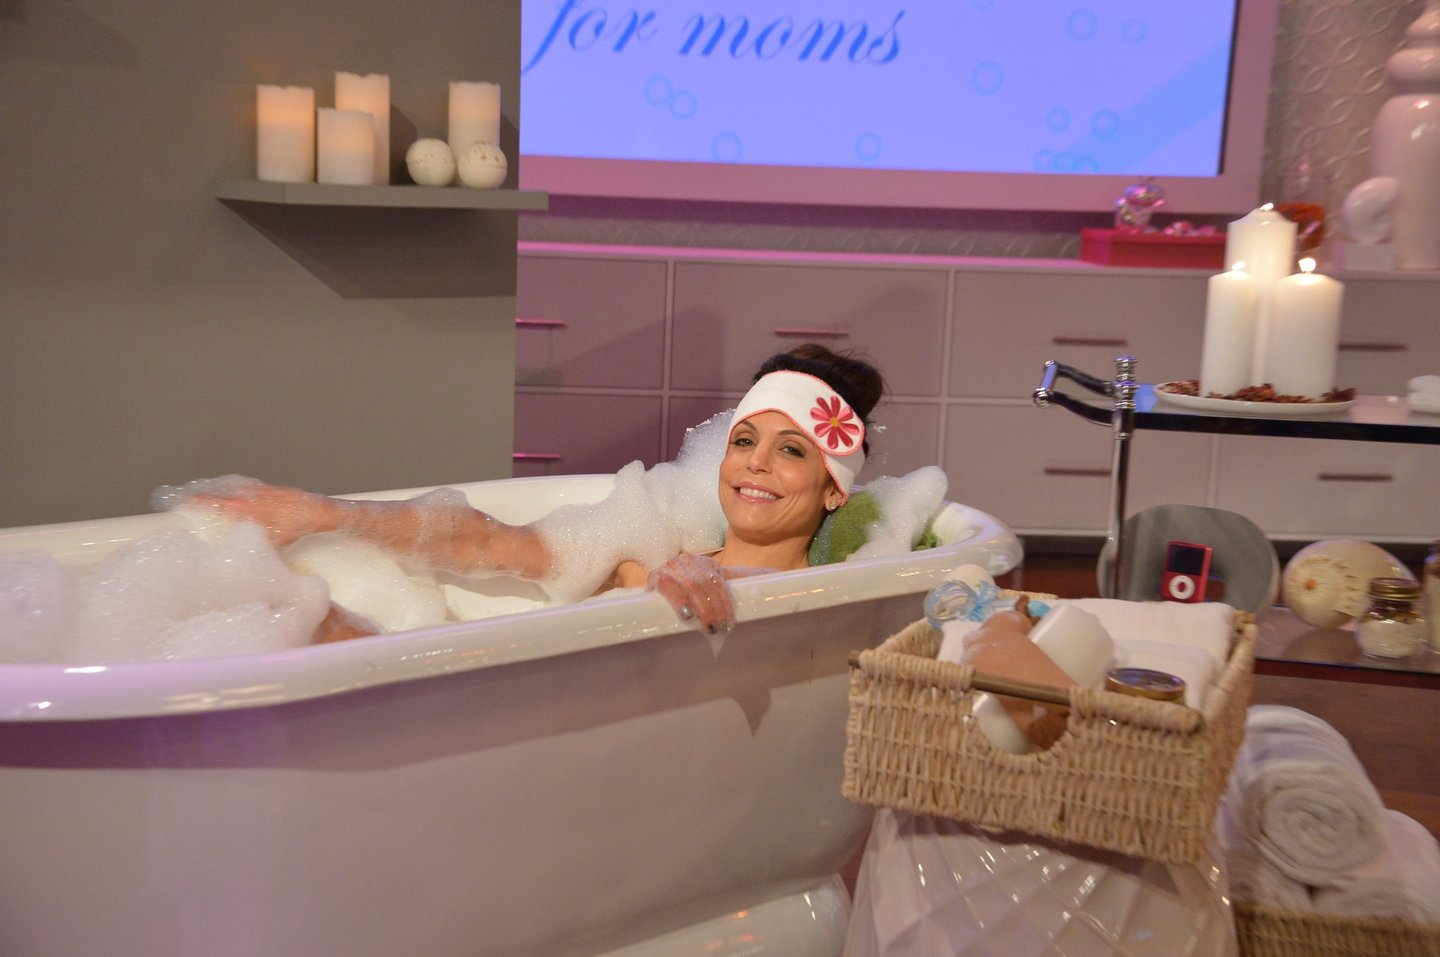 """NEW YORK - JANUARY 13:  Bethenny Frankel hosts Porsha Williams (not pictured) and shares bathtub essentials on """"bethenny"""" at CBS Broadcast Center January 13, 2014 in New York City.  The show will air January 16.  (Photo by Mike Coppola/Getty Images for """"bethenny"""")"""